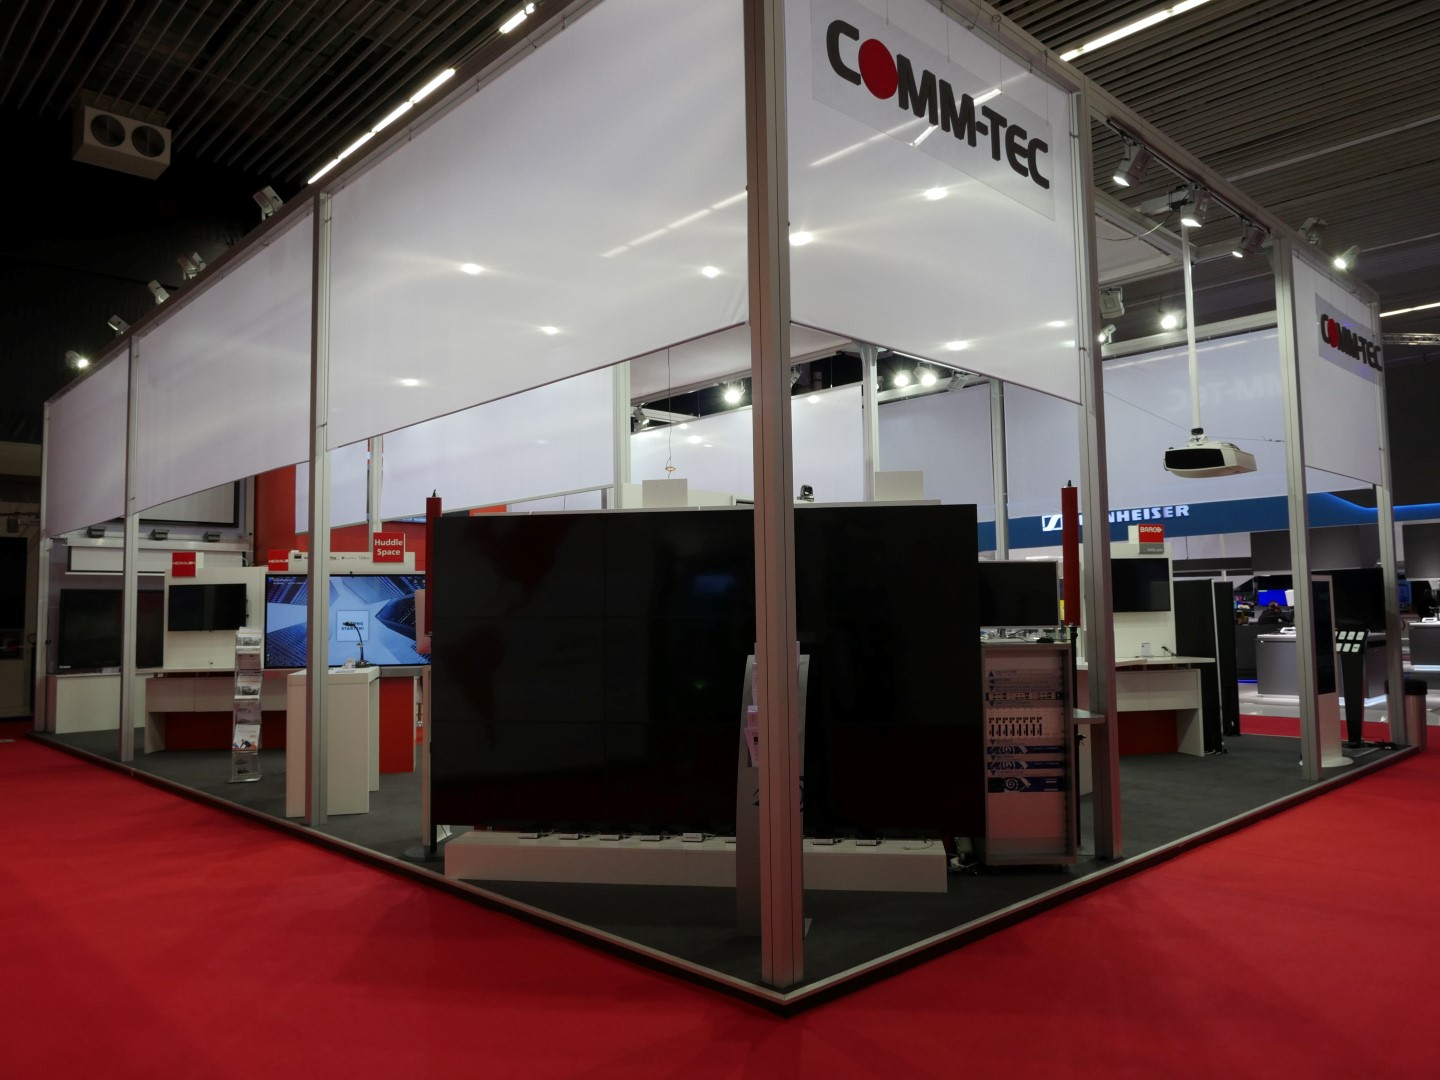 COMM-TEC Messestand